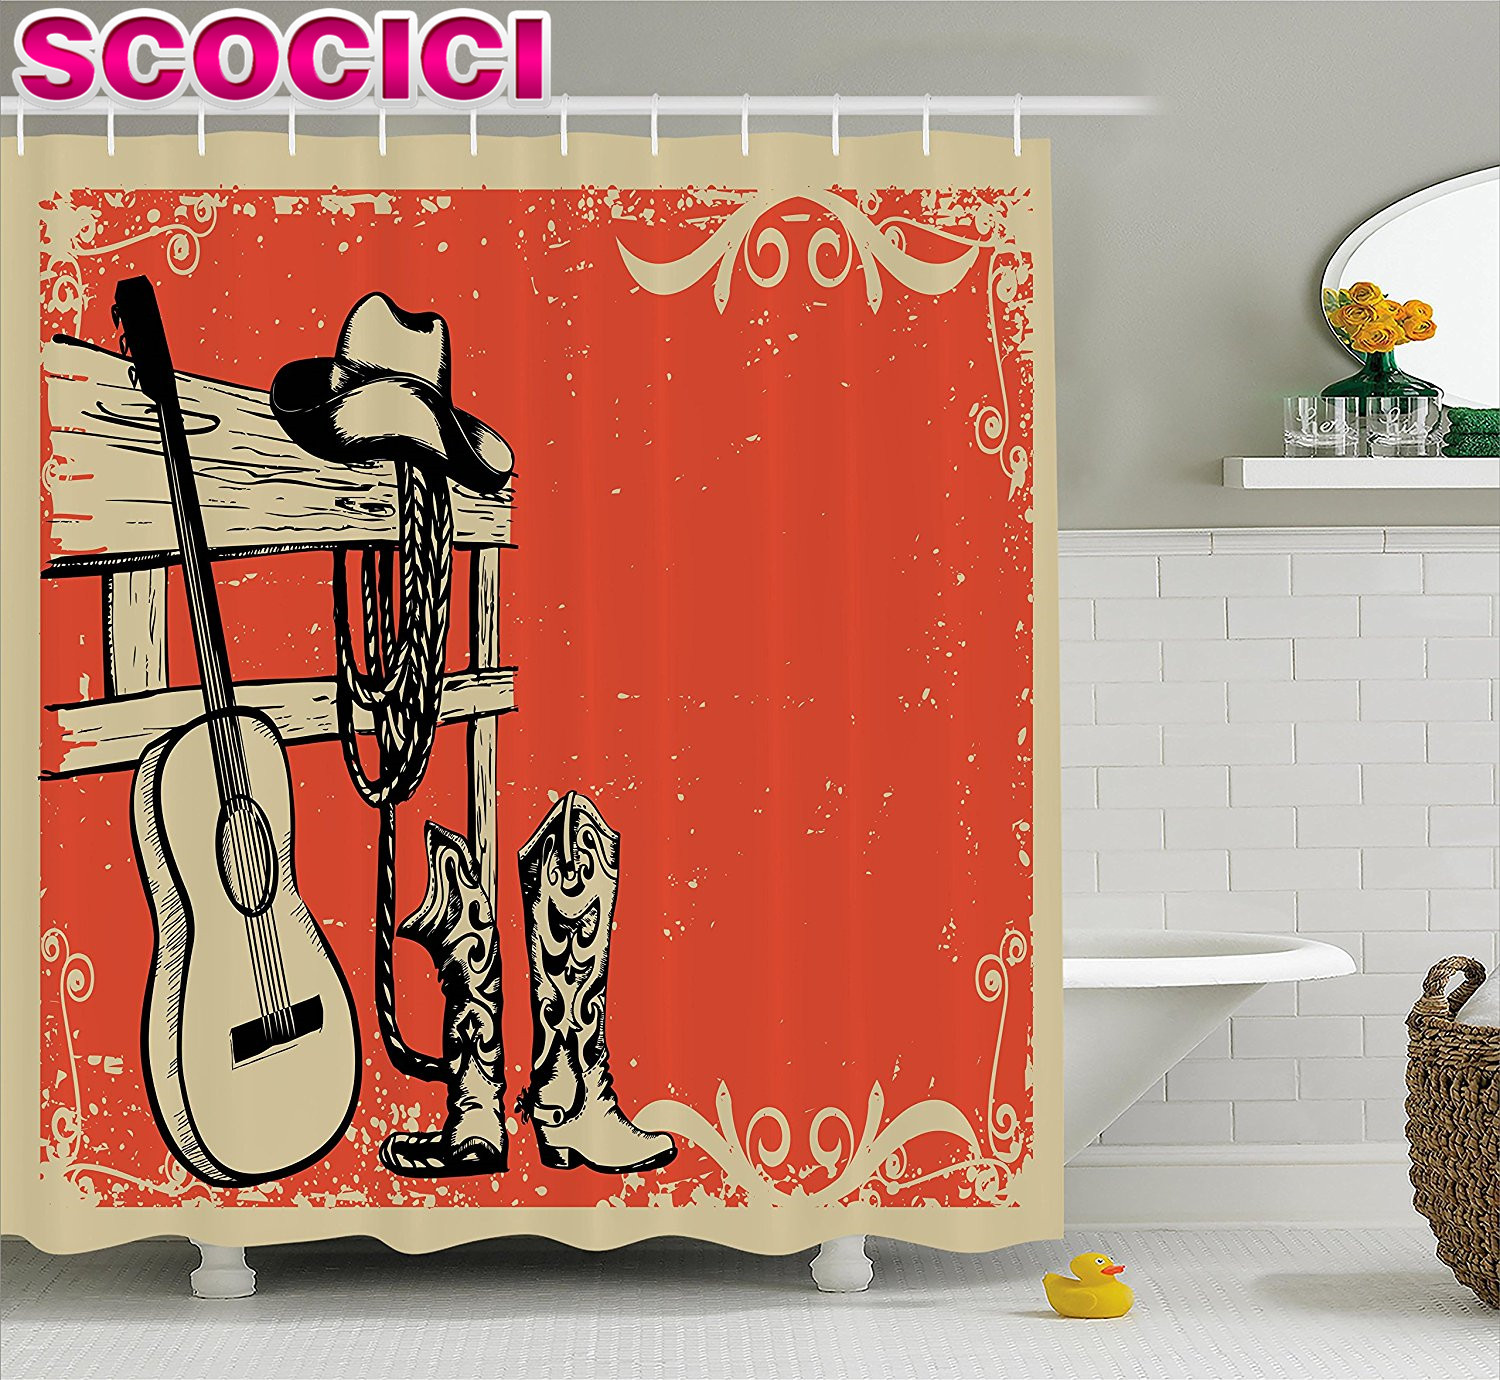 Country western shower curtains - Western Decor Shower Curtain Set Illustration Of Wild West Elements With Country Music Guitar And Cowboy Boots Retro Art Bathroo